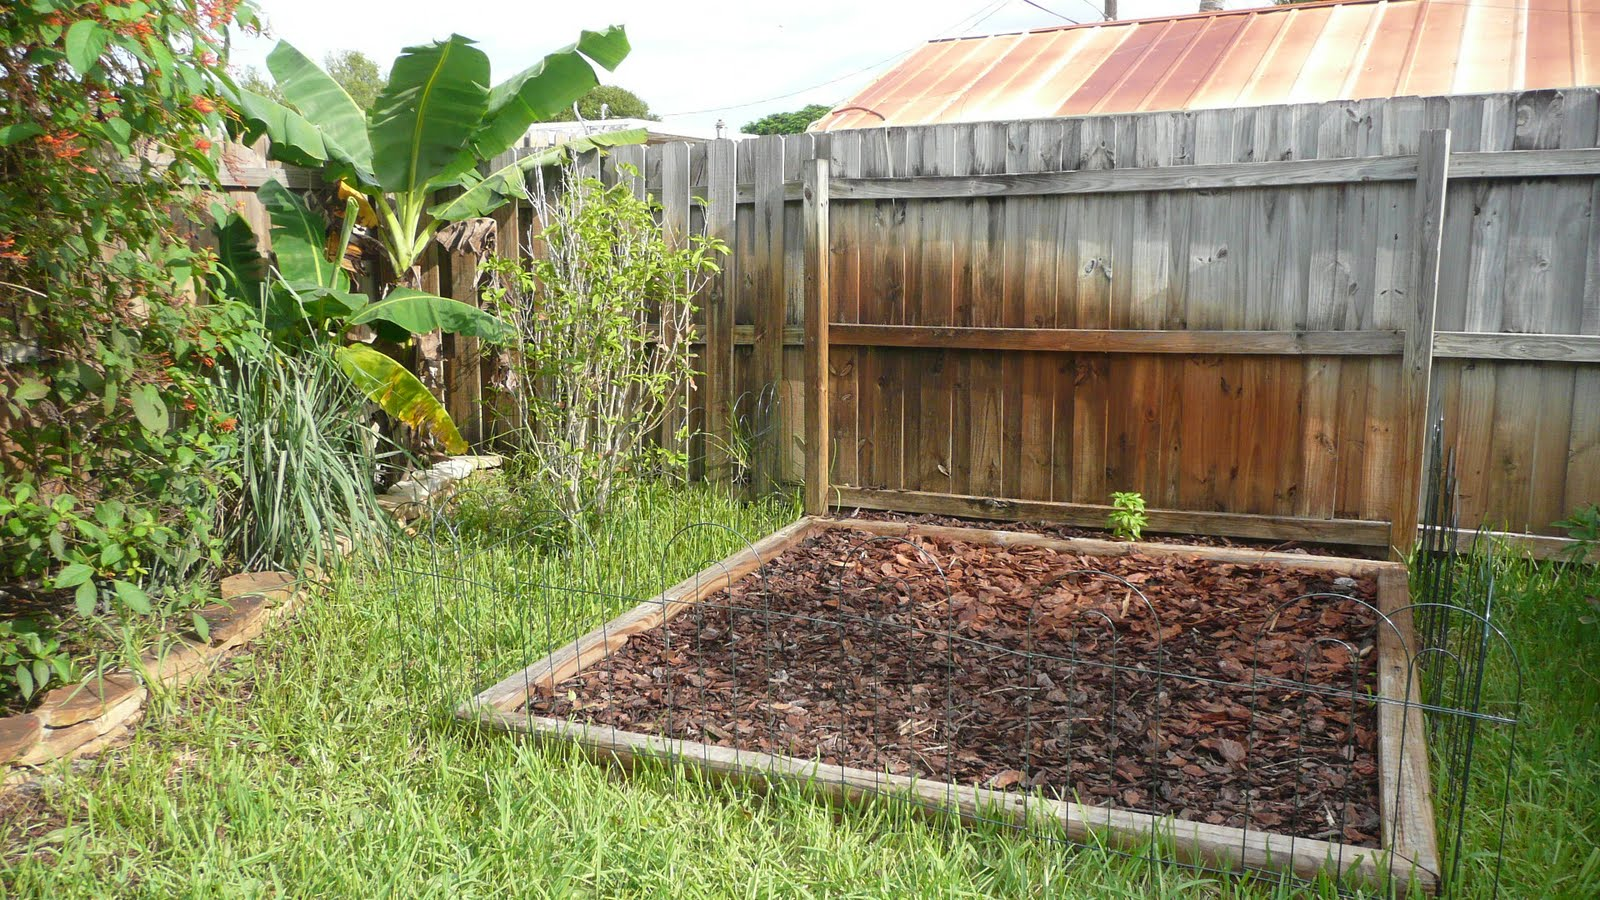 Gardening south florida style south florida vegetable - South florida vegetable gardening ...